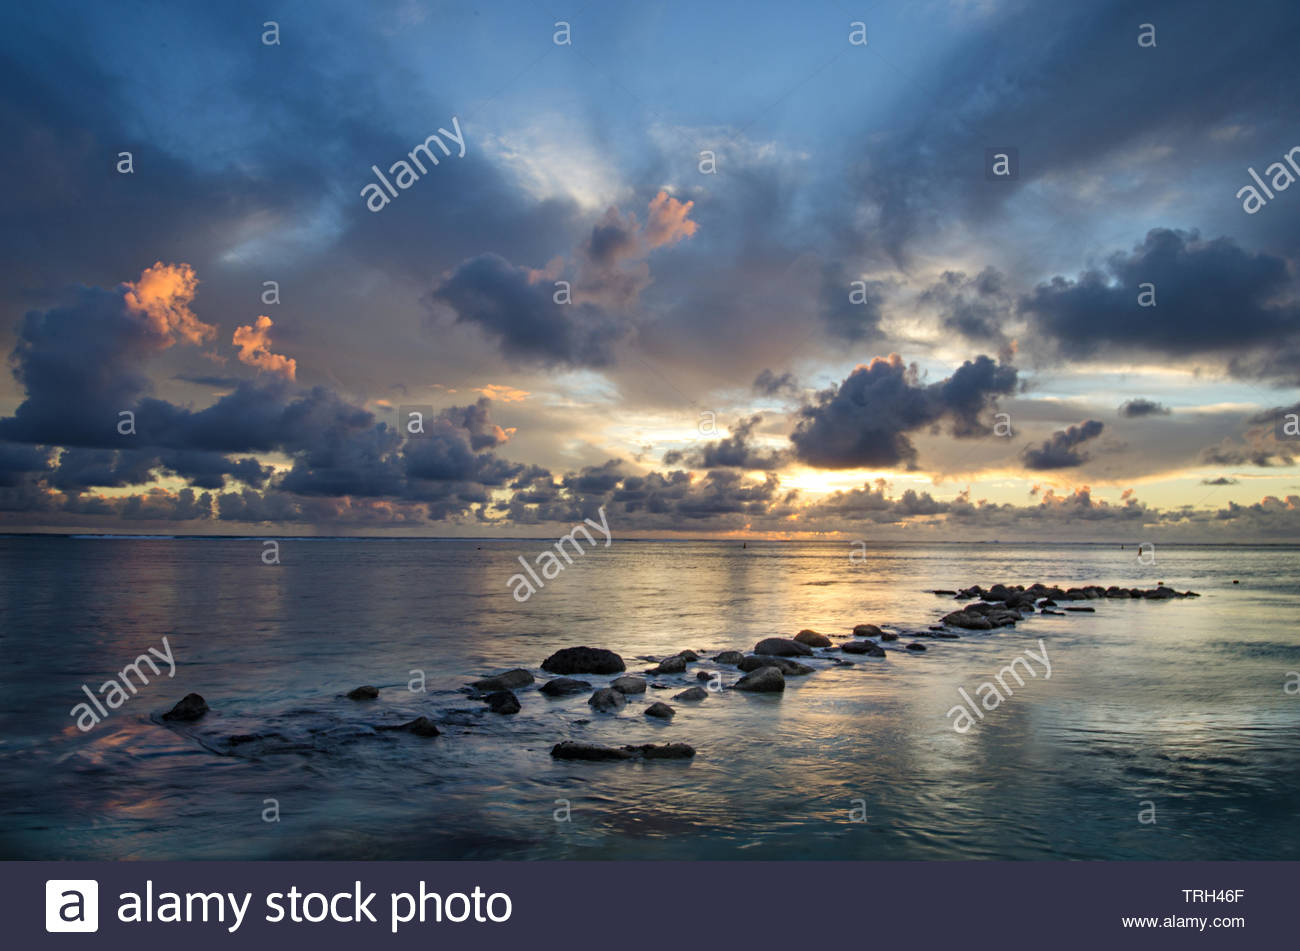 Twilight over Bel Ombre in Mauritus where reflections on Indian Ocean created a heavenly atmosphere with the most colorful cloudscape - Stock Image